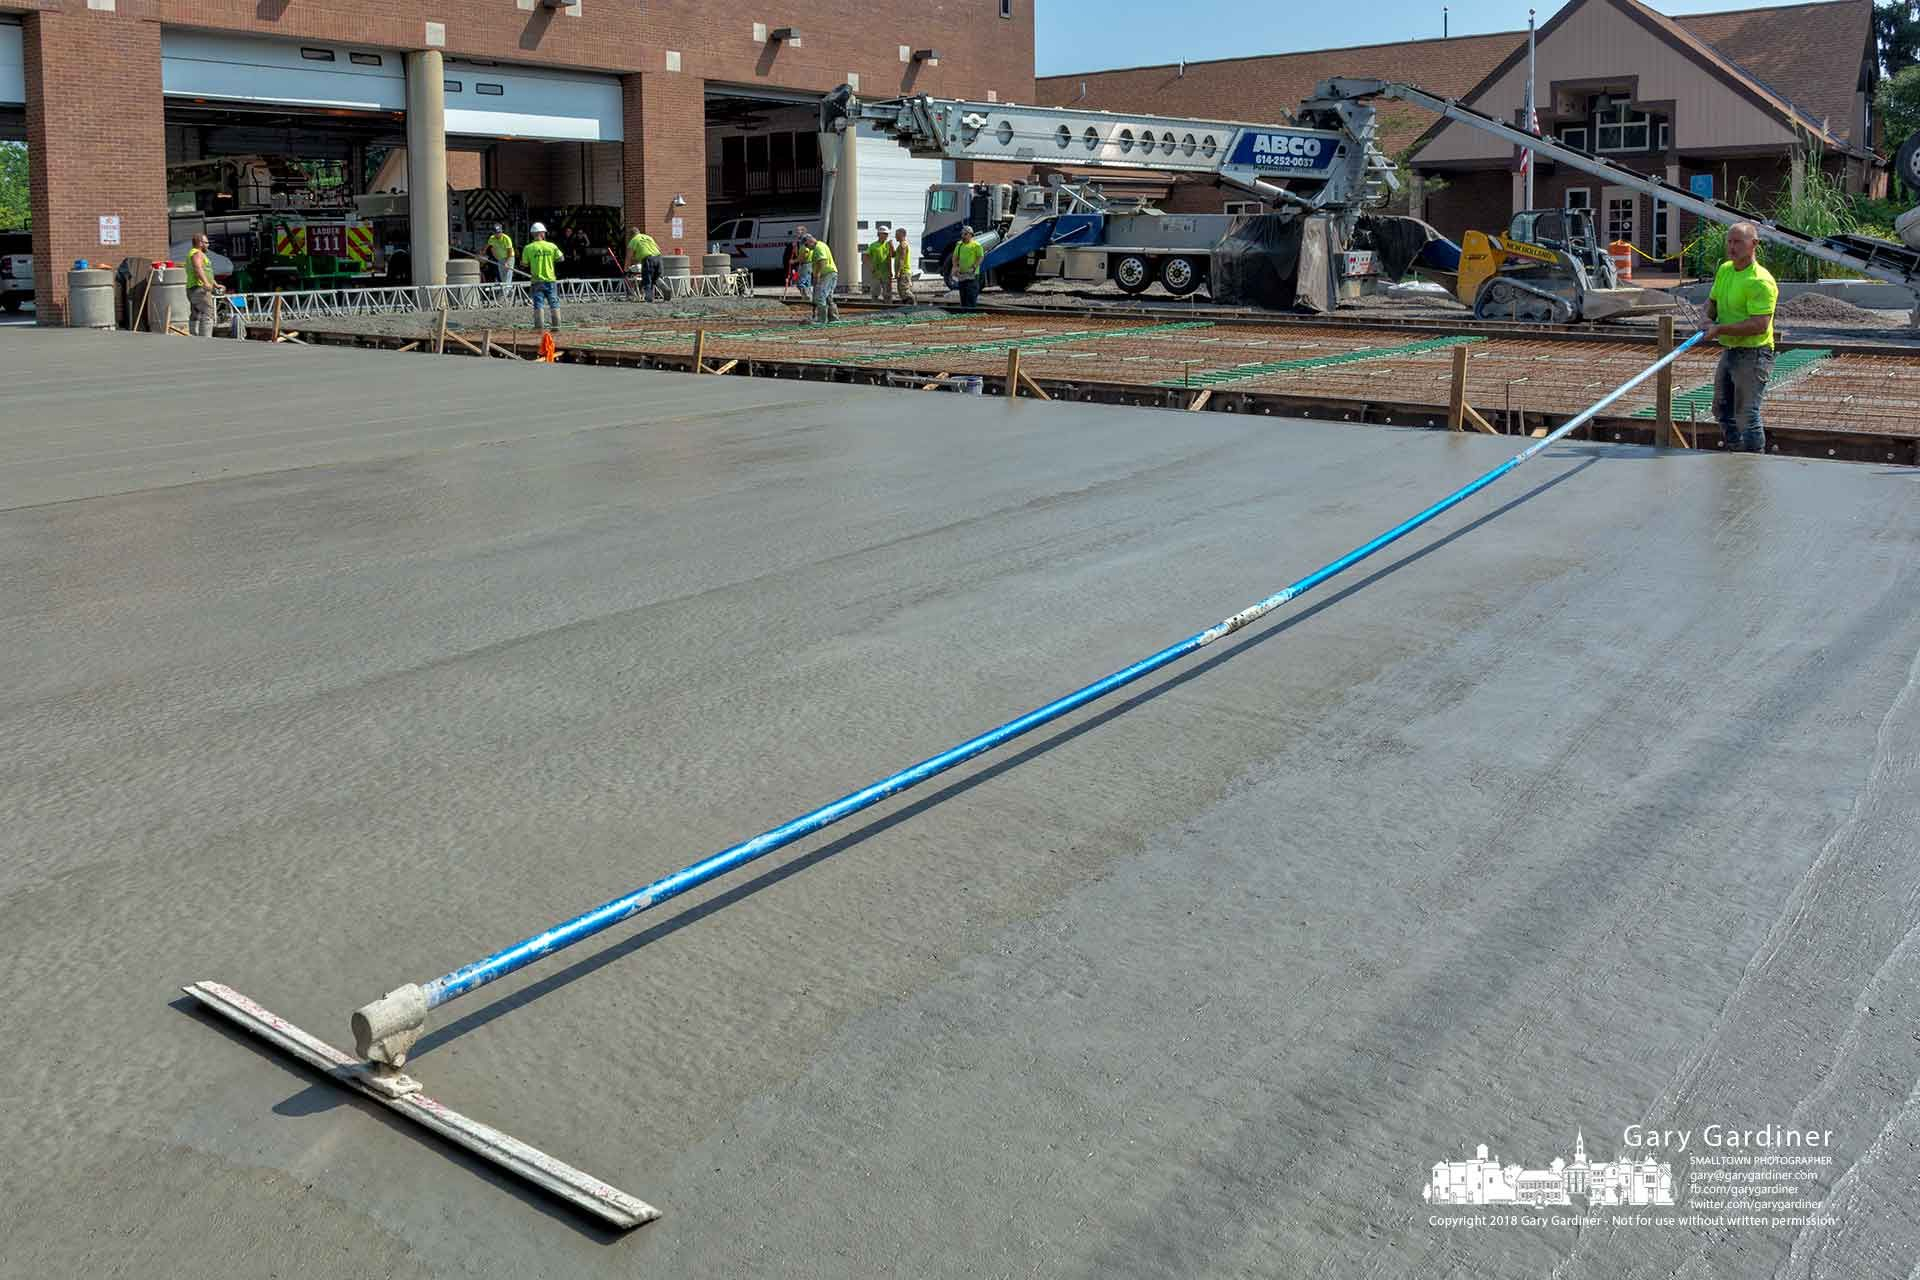 Fire station new ramp concrete concrete workers pump